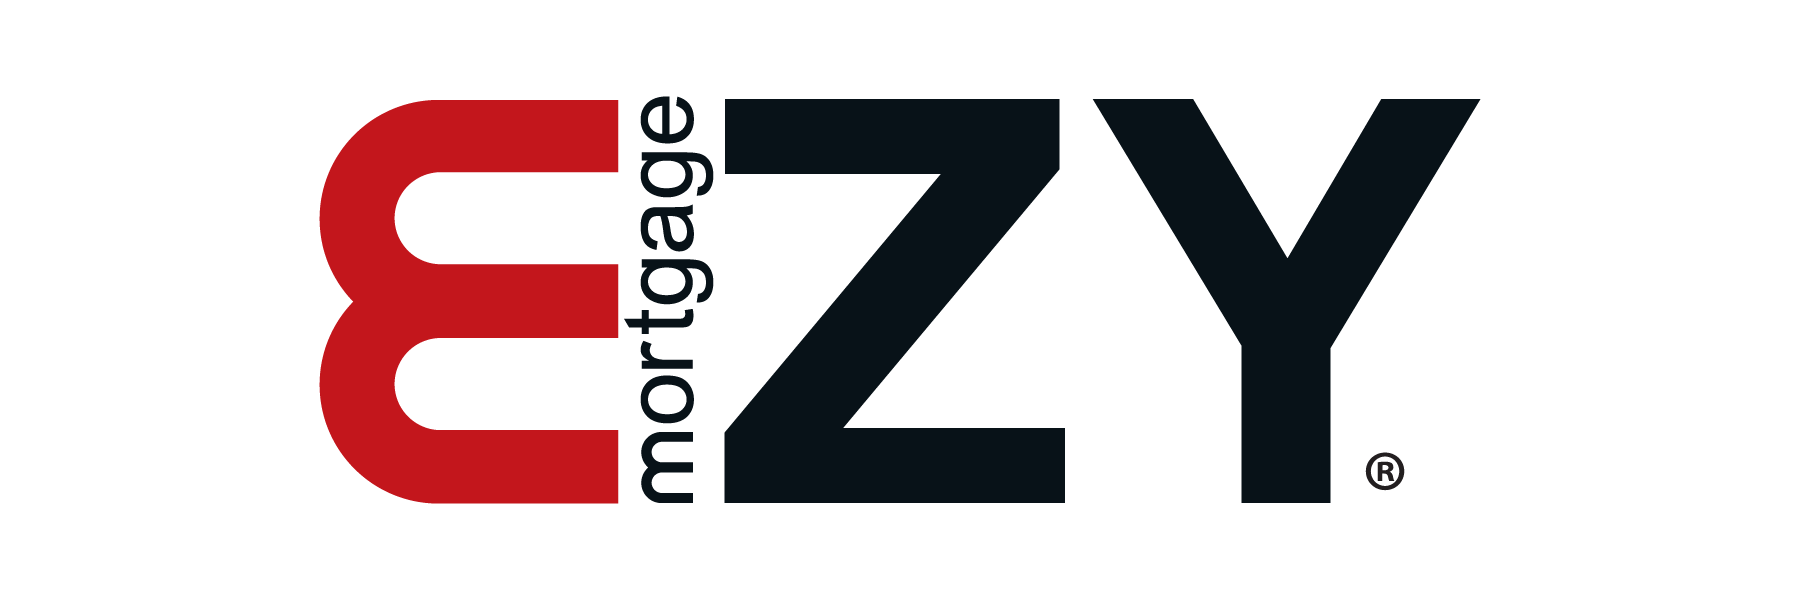 Mortgage ezy logo